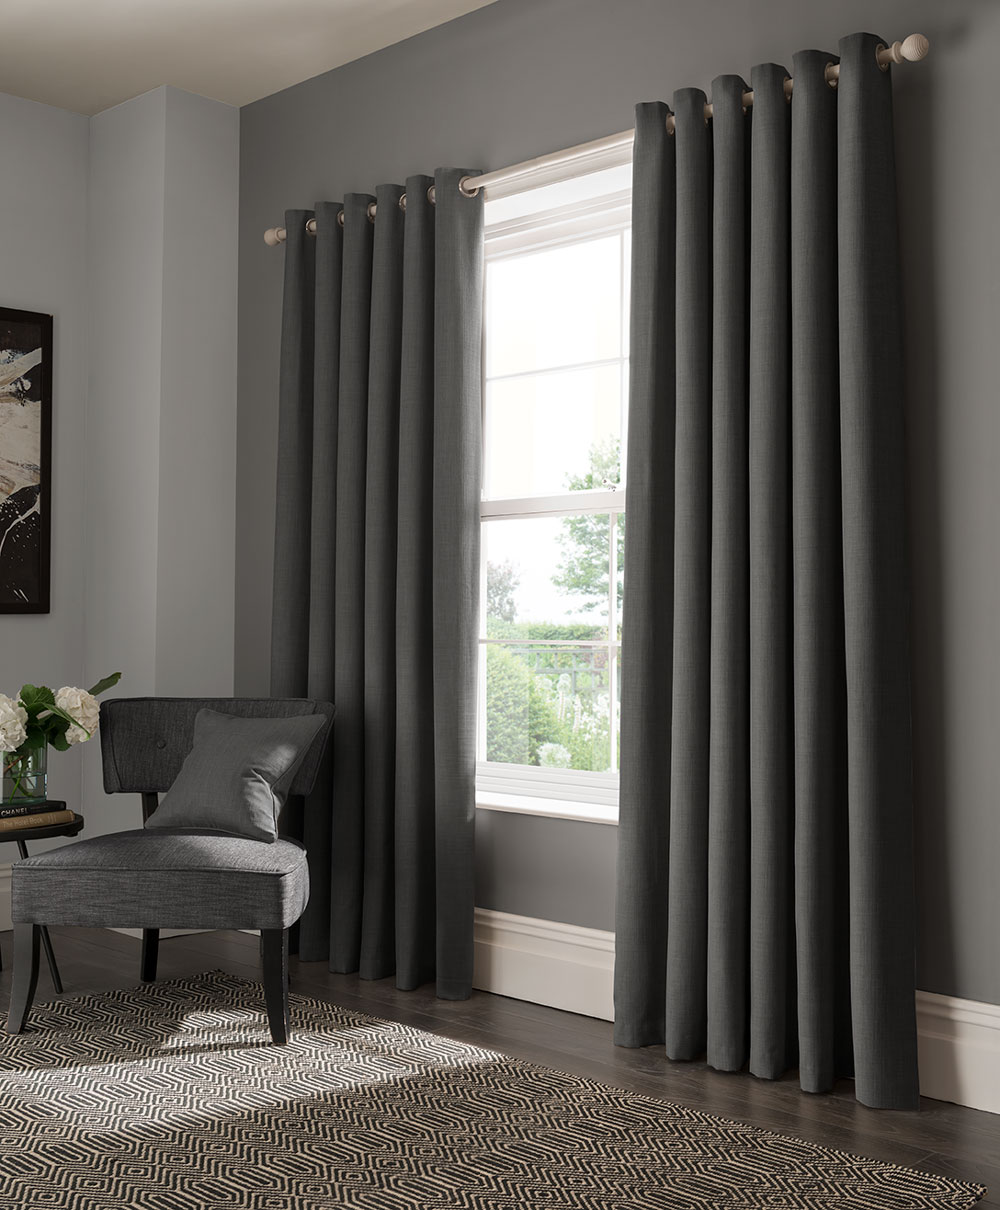 Studio G Elba Eyelet Curtains Steel Ready Made Curtains - Product code: M1104/04/46X7